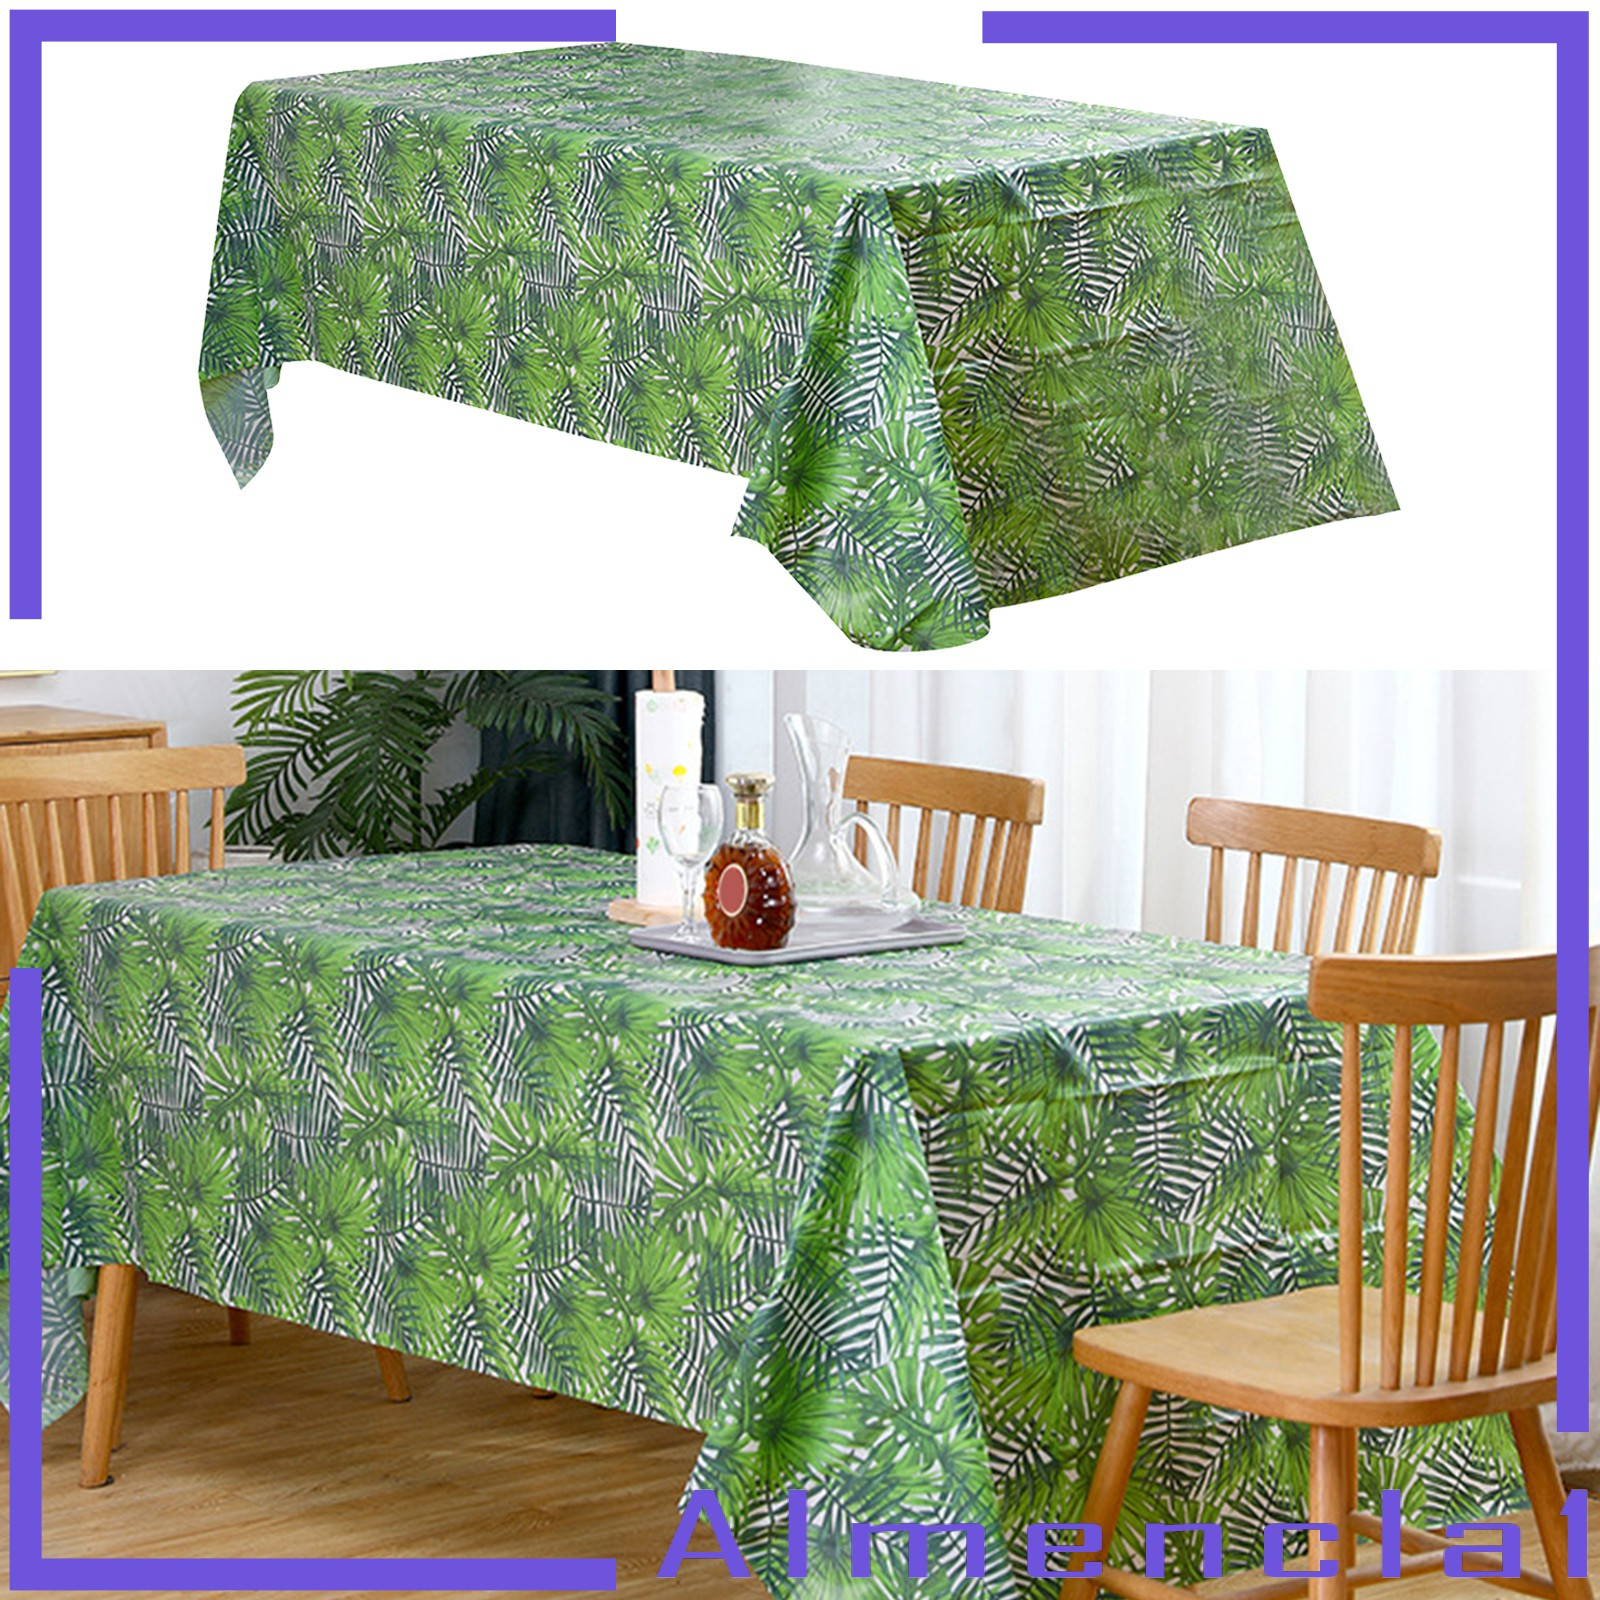 Handa Na Stock 8 9 Feet Table Runner Rectangle Tablecloth Waterproof Long Party Cloth Almencla1 Ee Philippines - What Size Is A Rectangular Party Table